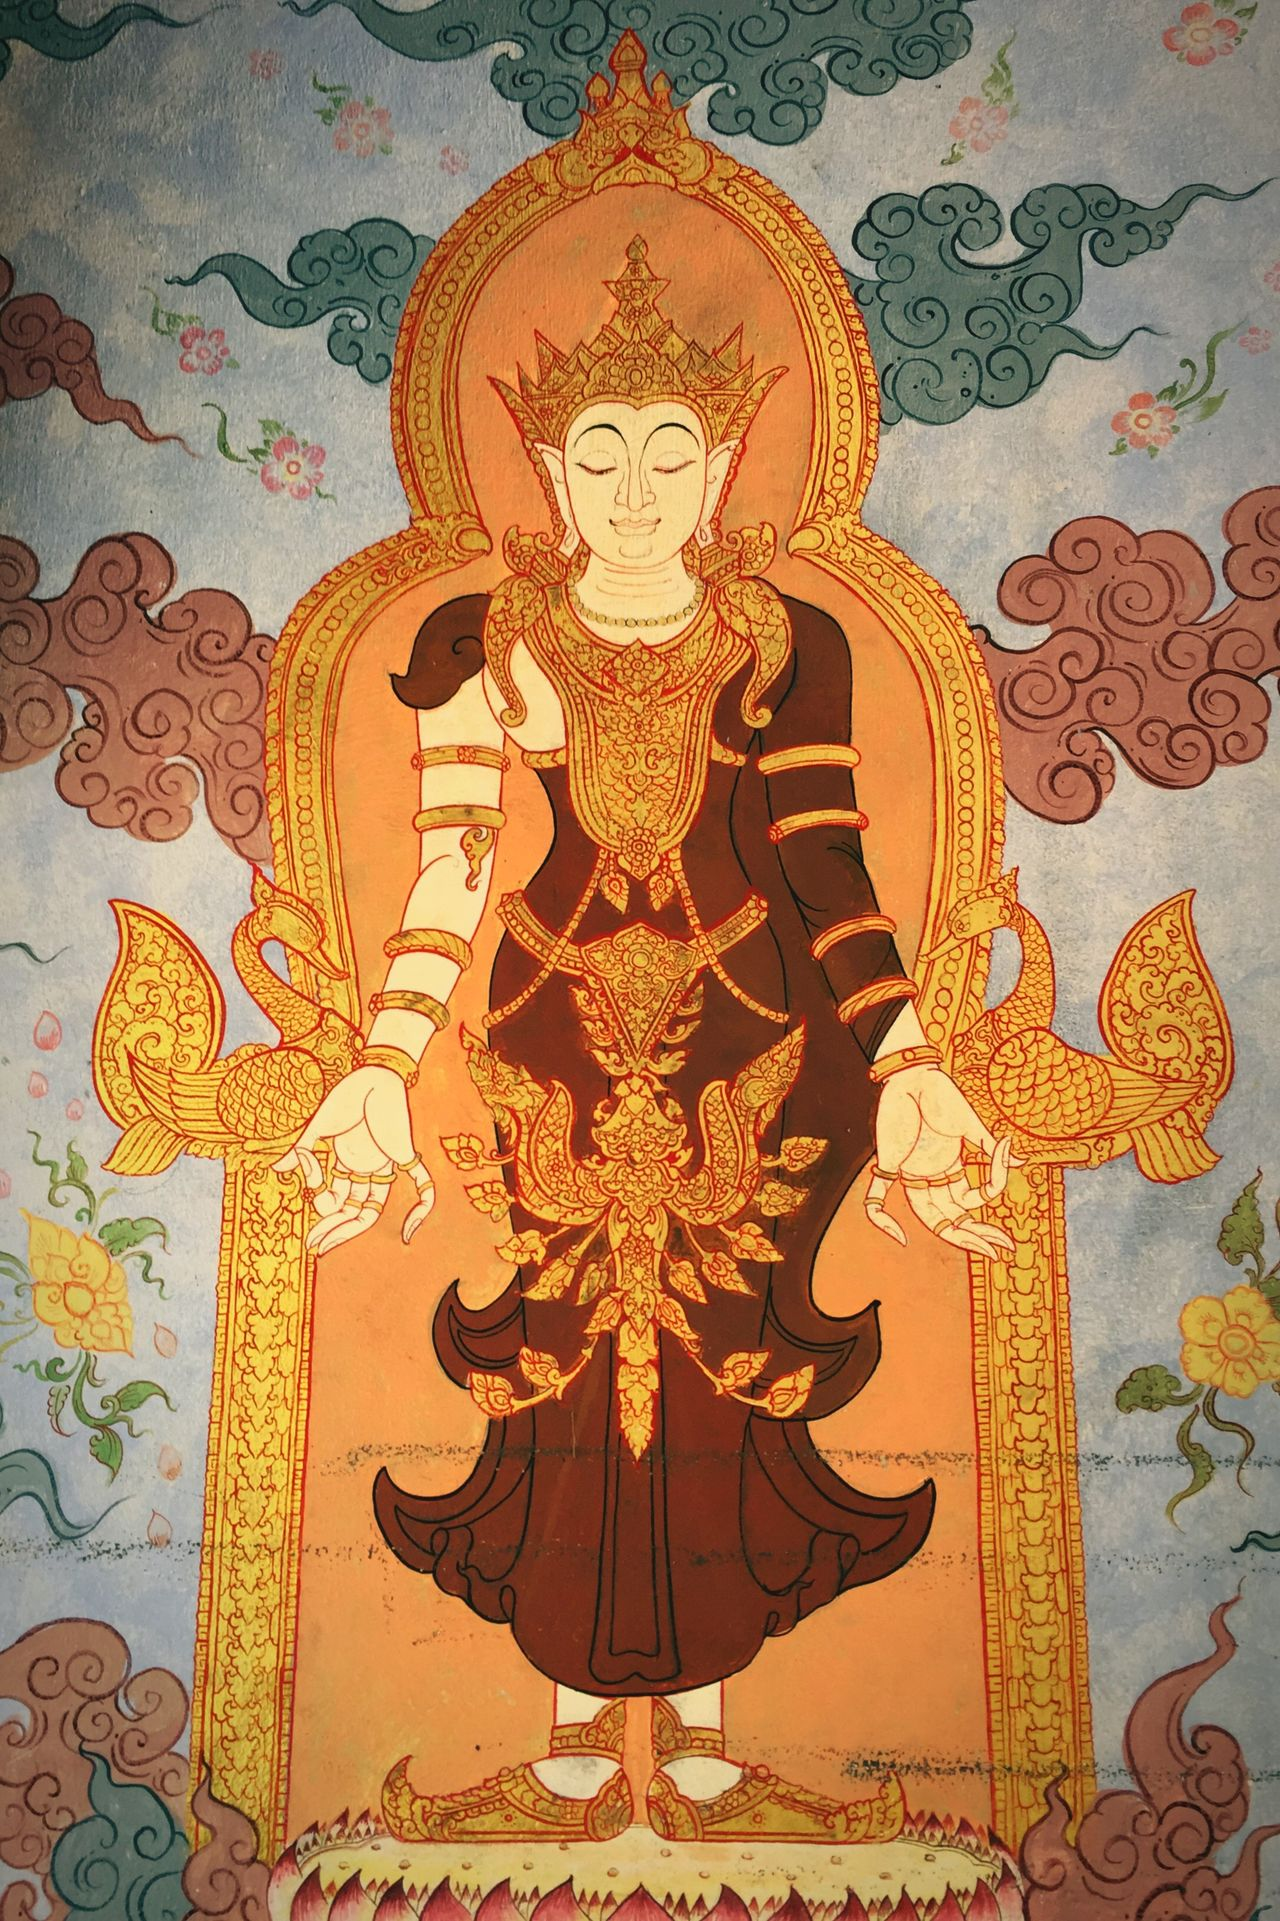 Religion Indoors  No People Day Astrology Sign Temple Buddhism Buddha Painting Charm Calm Buddha Image History Timeless Thailand Chiang Mai Buddhist Temple King Rama V